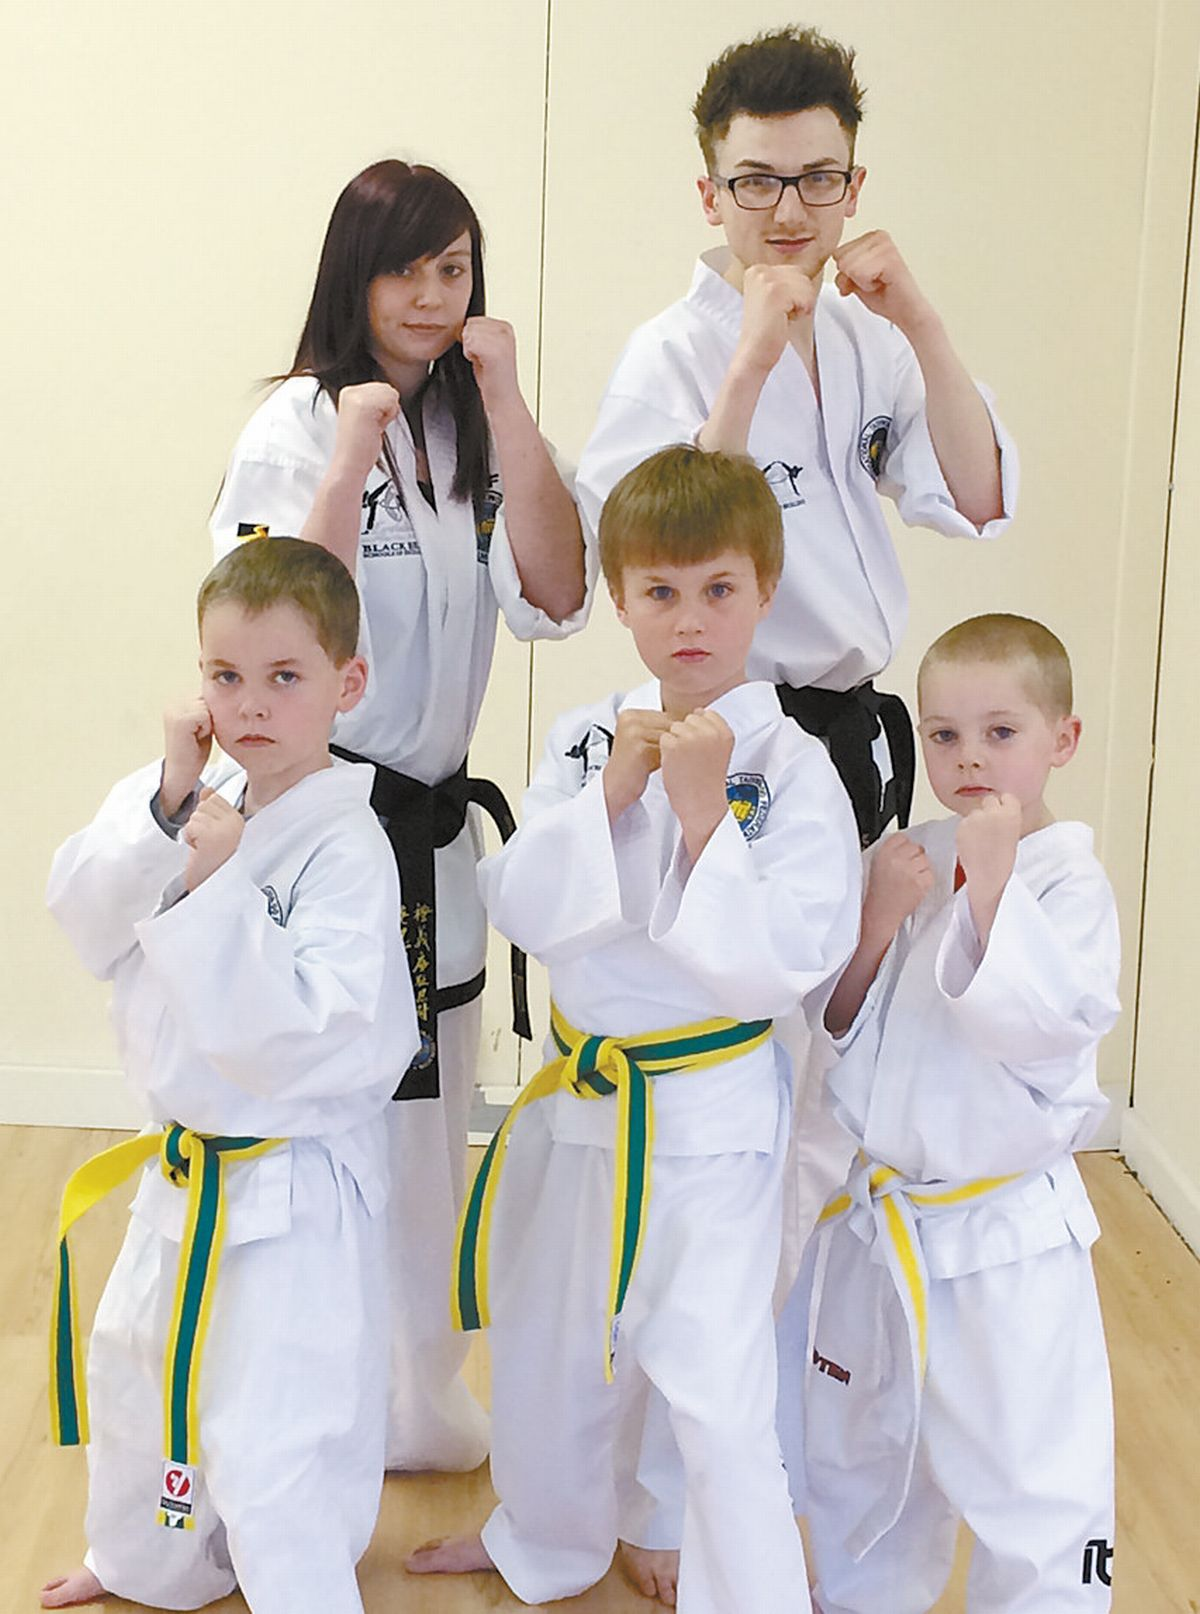 Grading success for Chard students